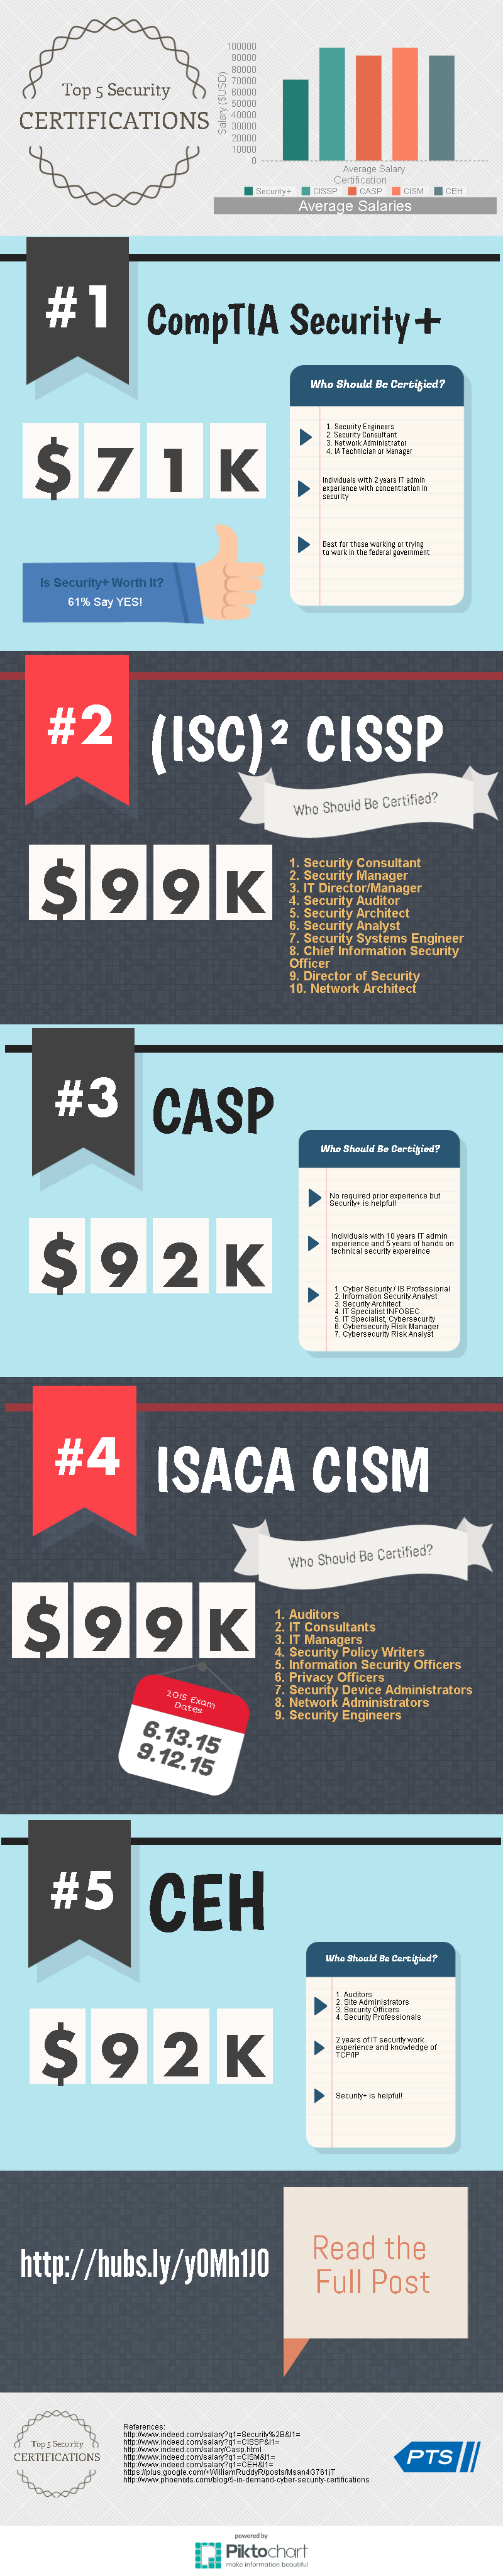 Top 5 Security Certifications Infographic | Phoenix TS